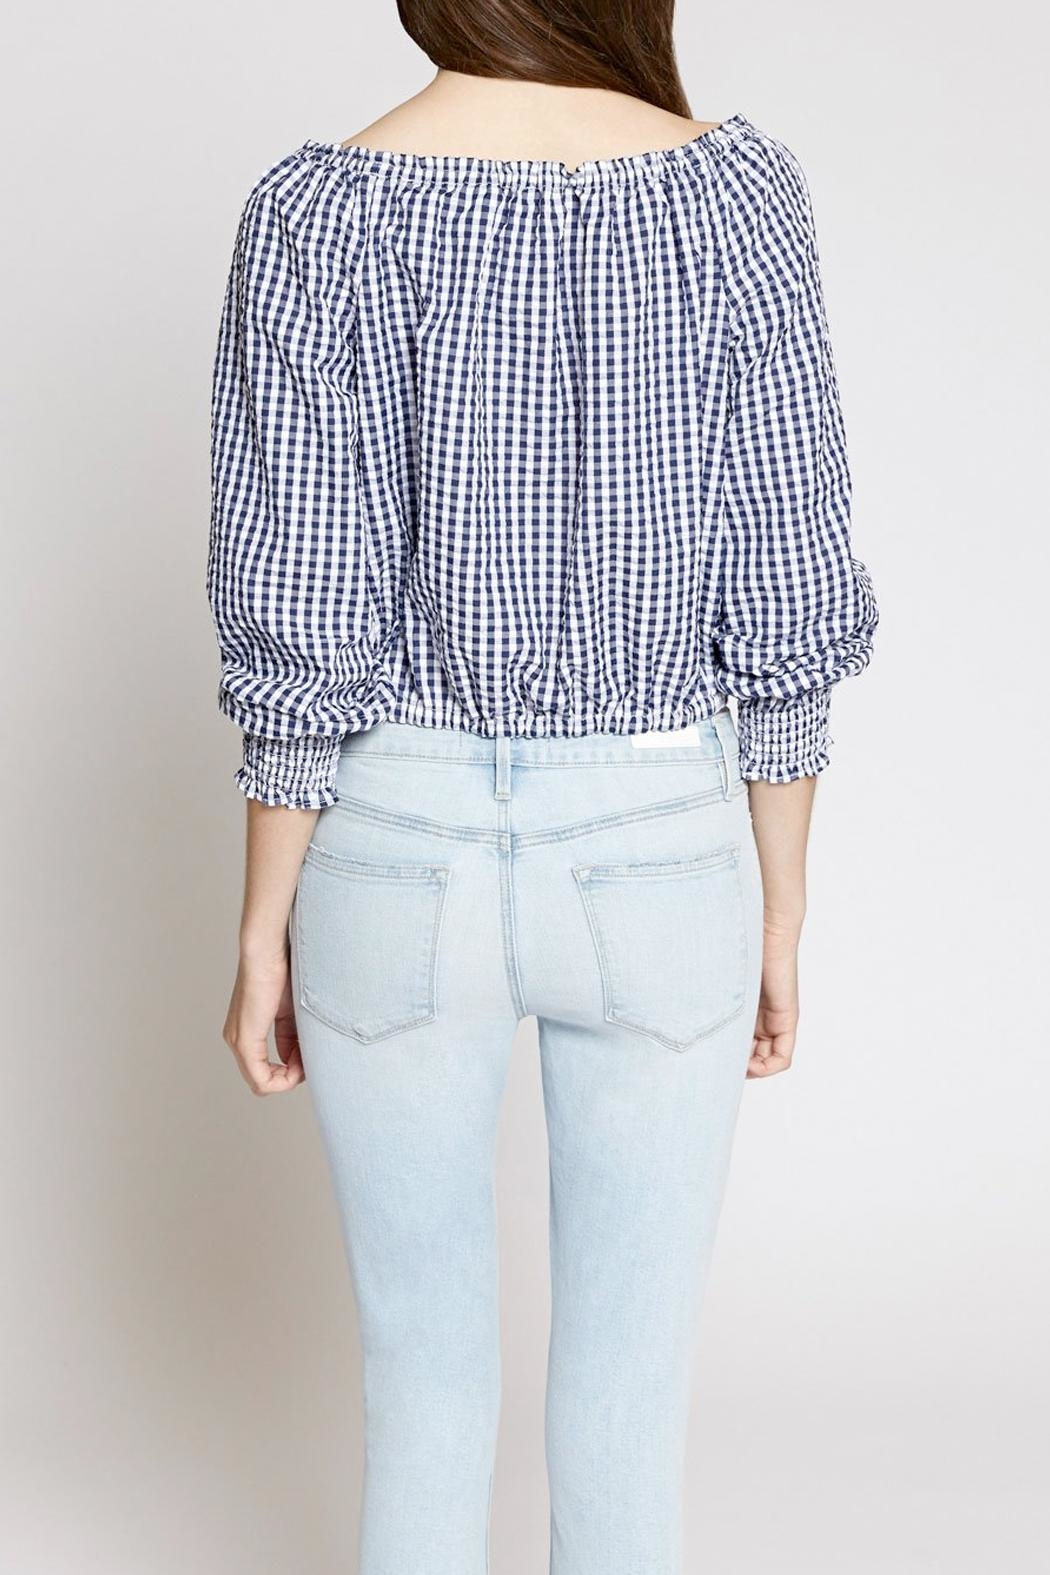 Sanctuary Claire Off-The-Shoulder Top - Side Cropped Image